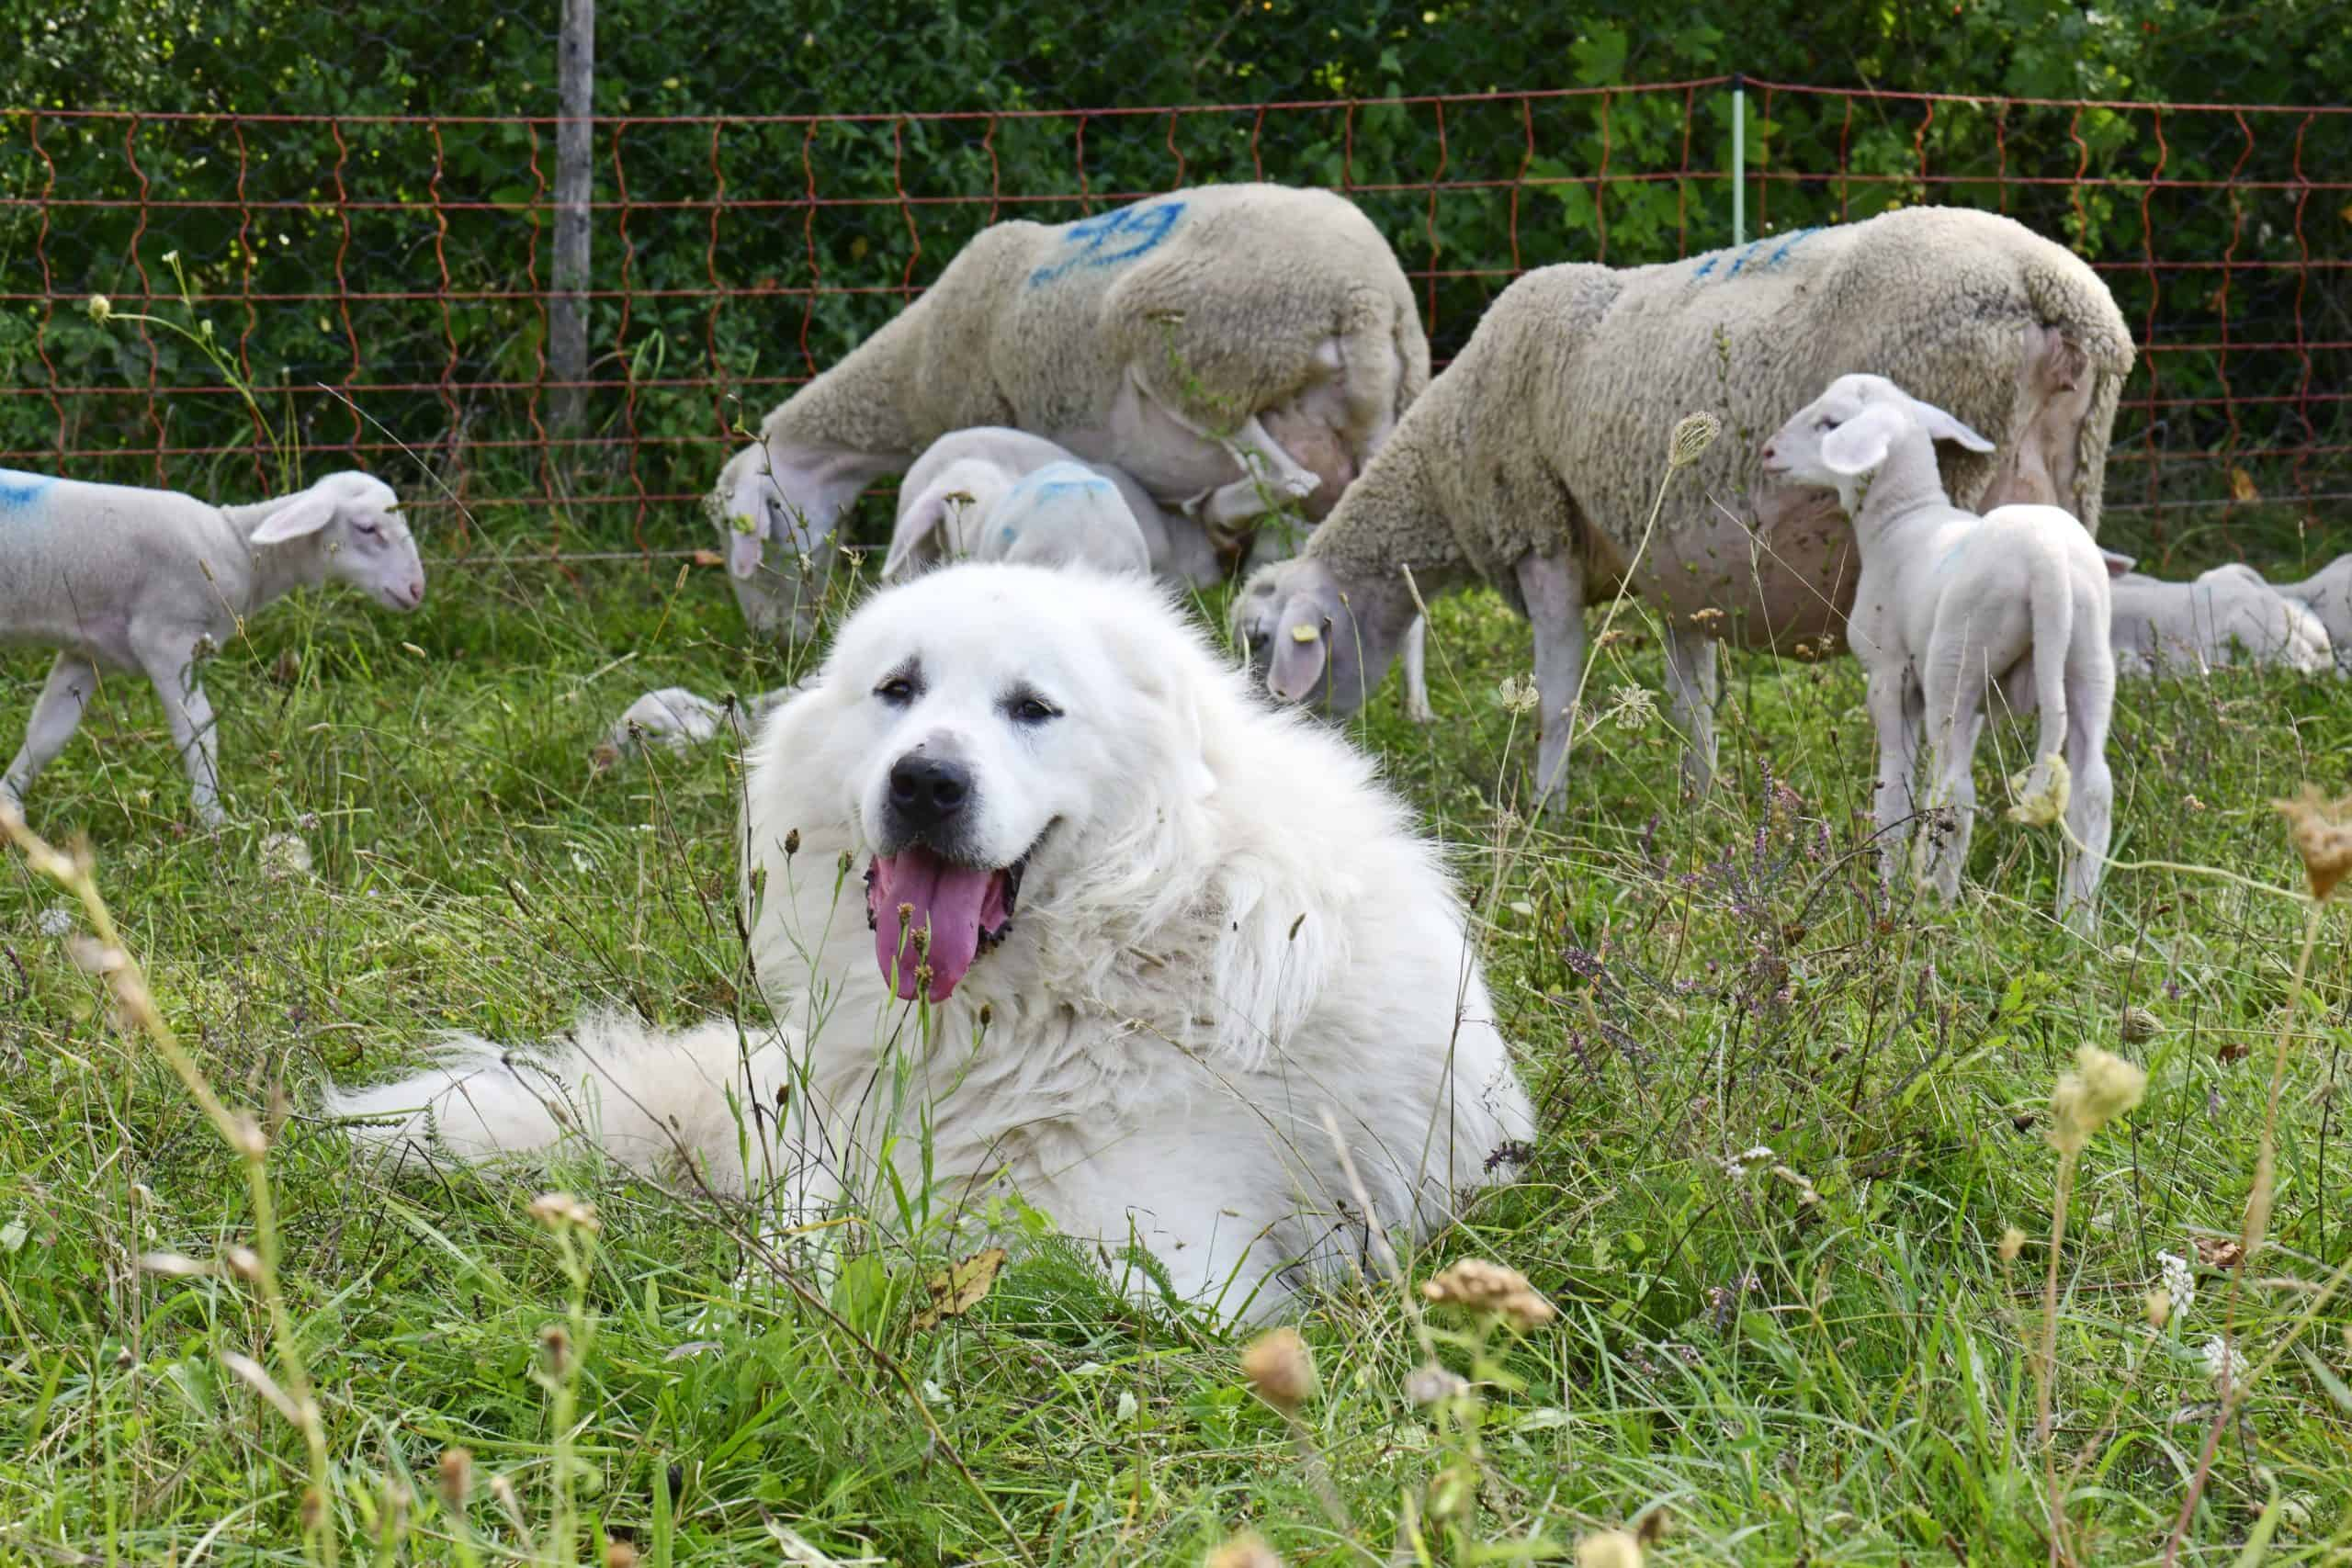 Great Pyrenees with flock of sheep. Having been bred to be watchdogs for flocks, Great Pyrenees require more than the usual exercise